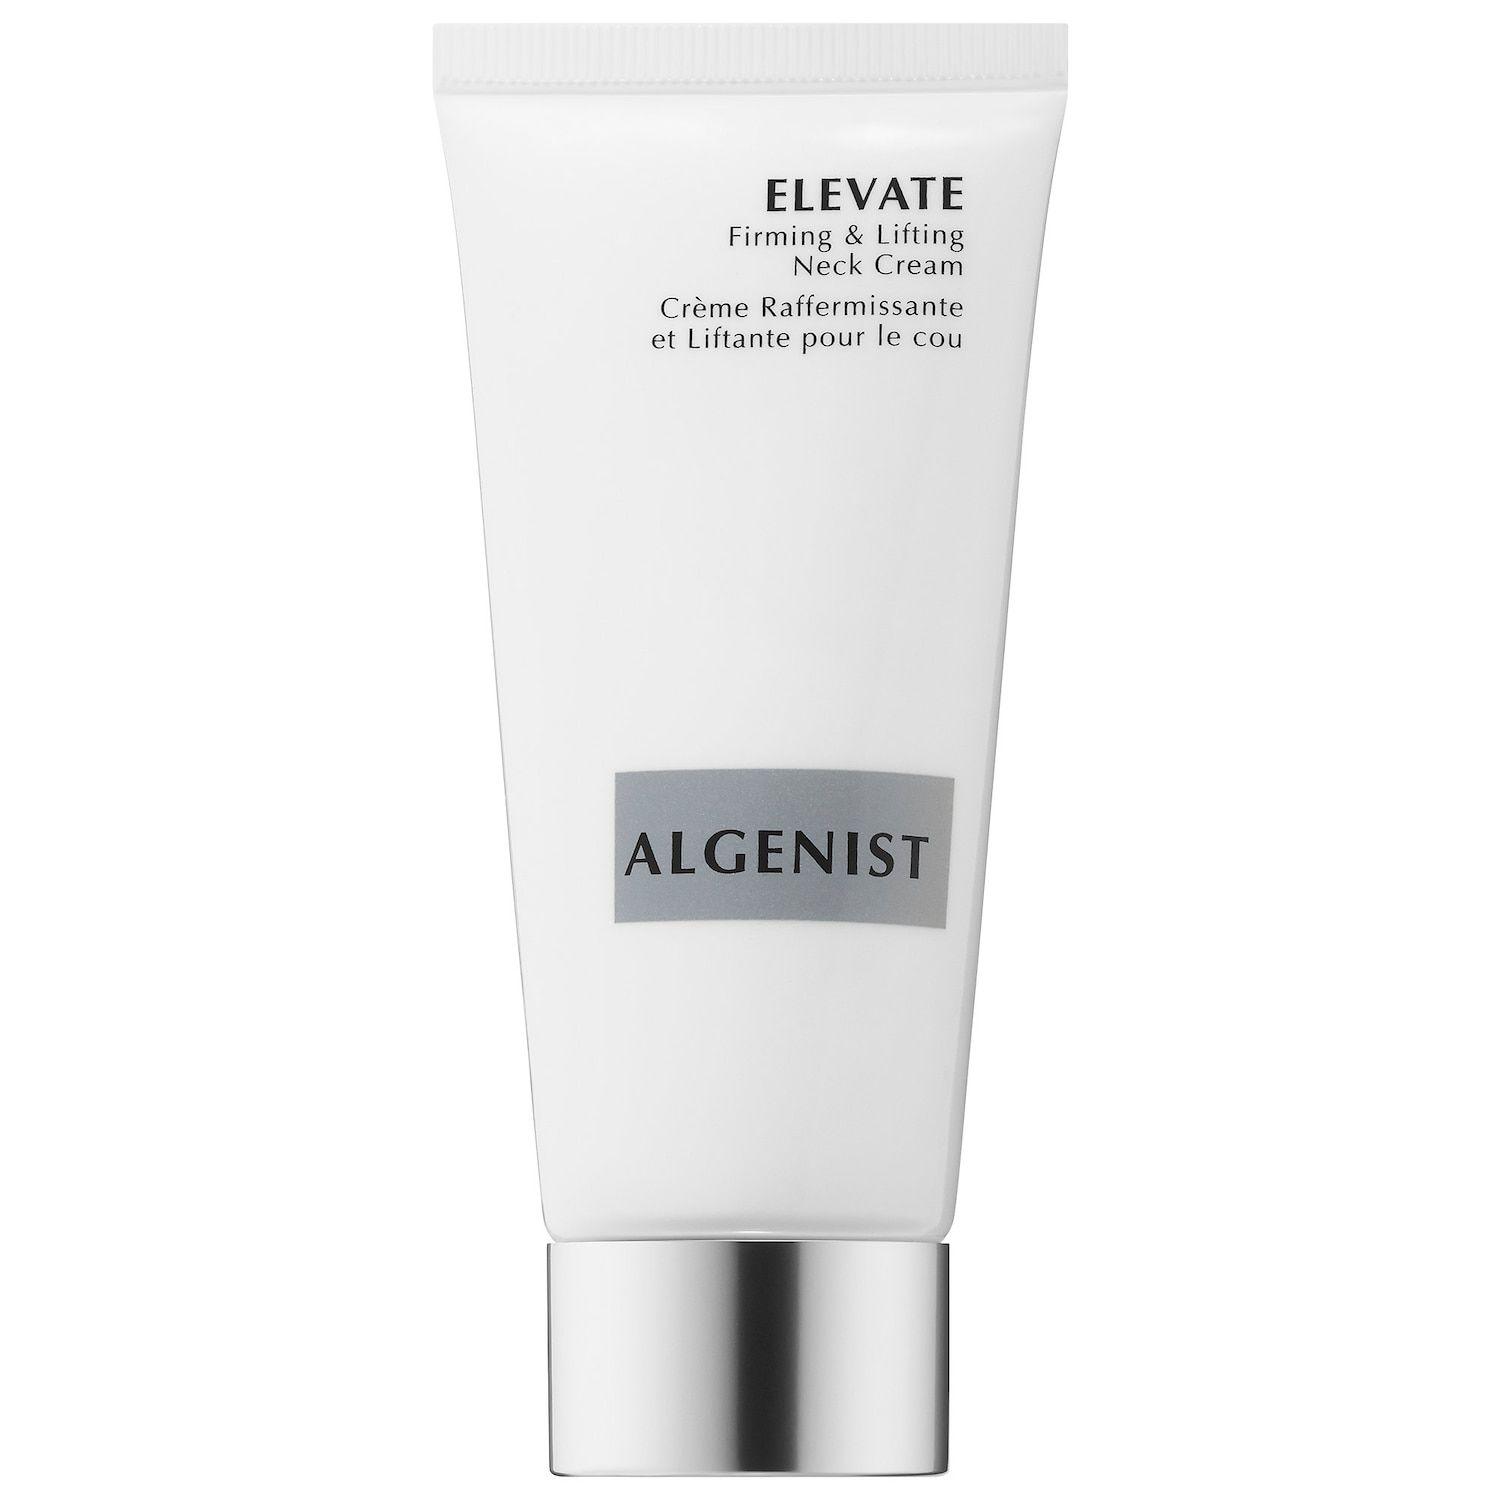 Anti-Aging Neck Cream to Firm Skin